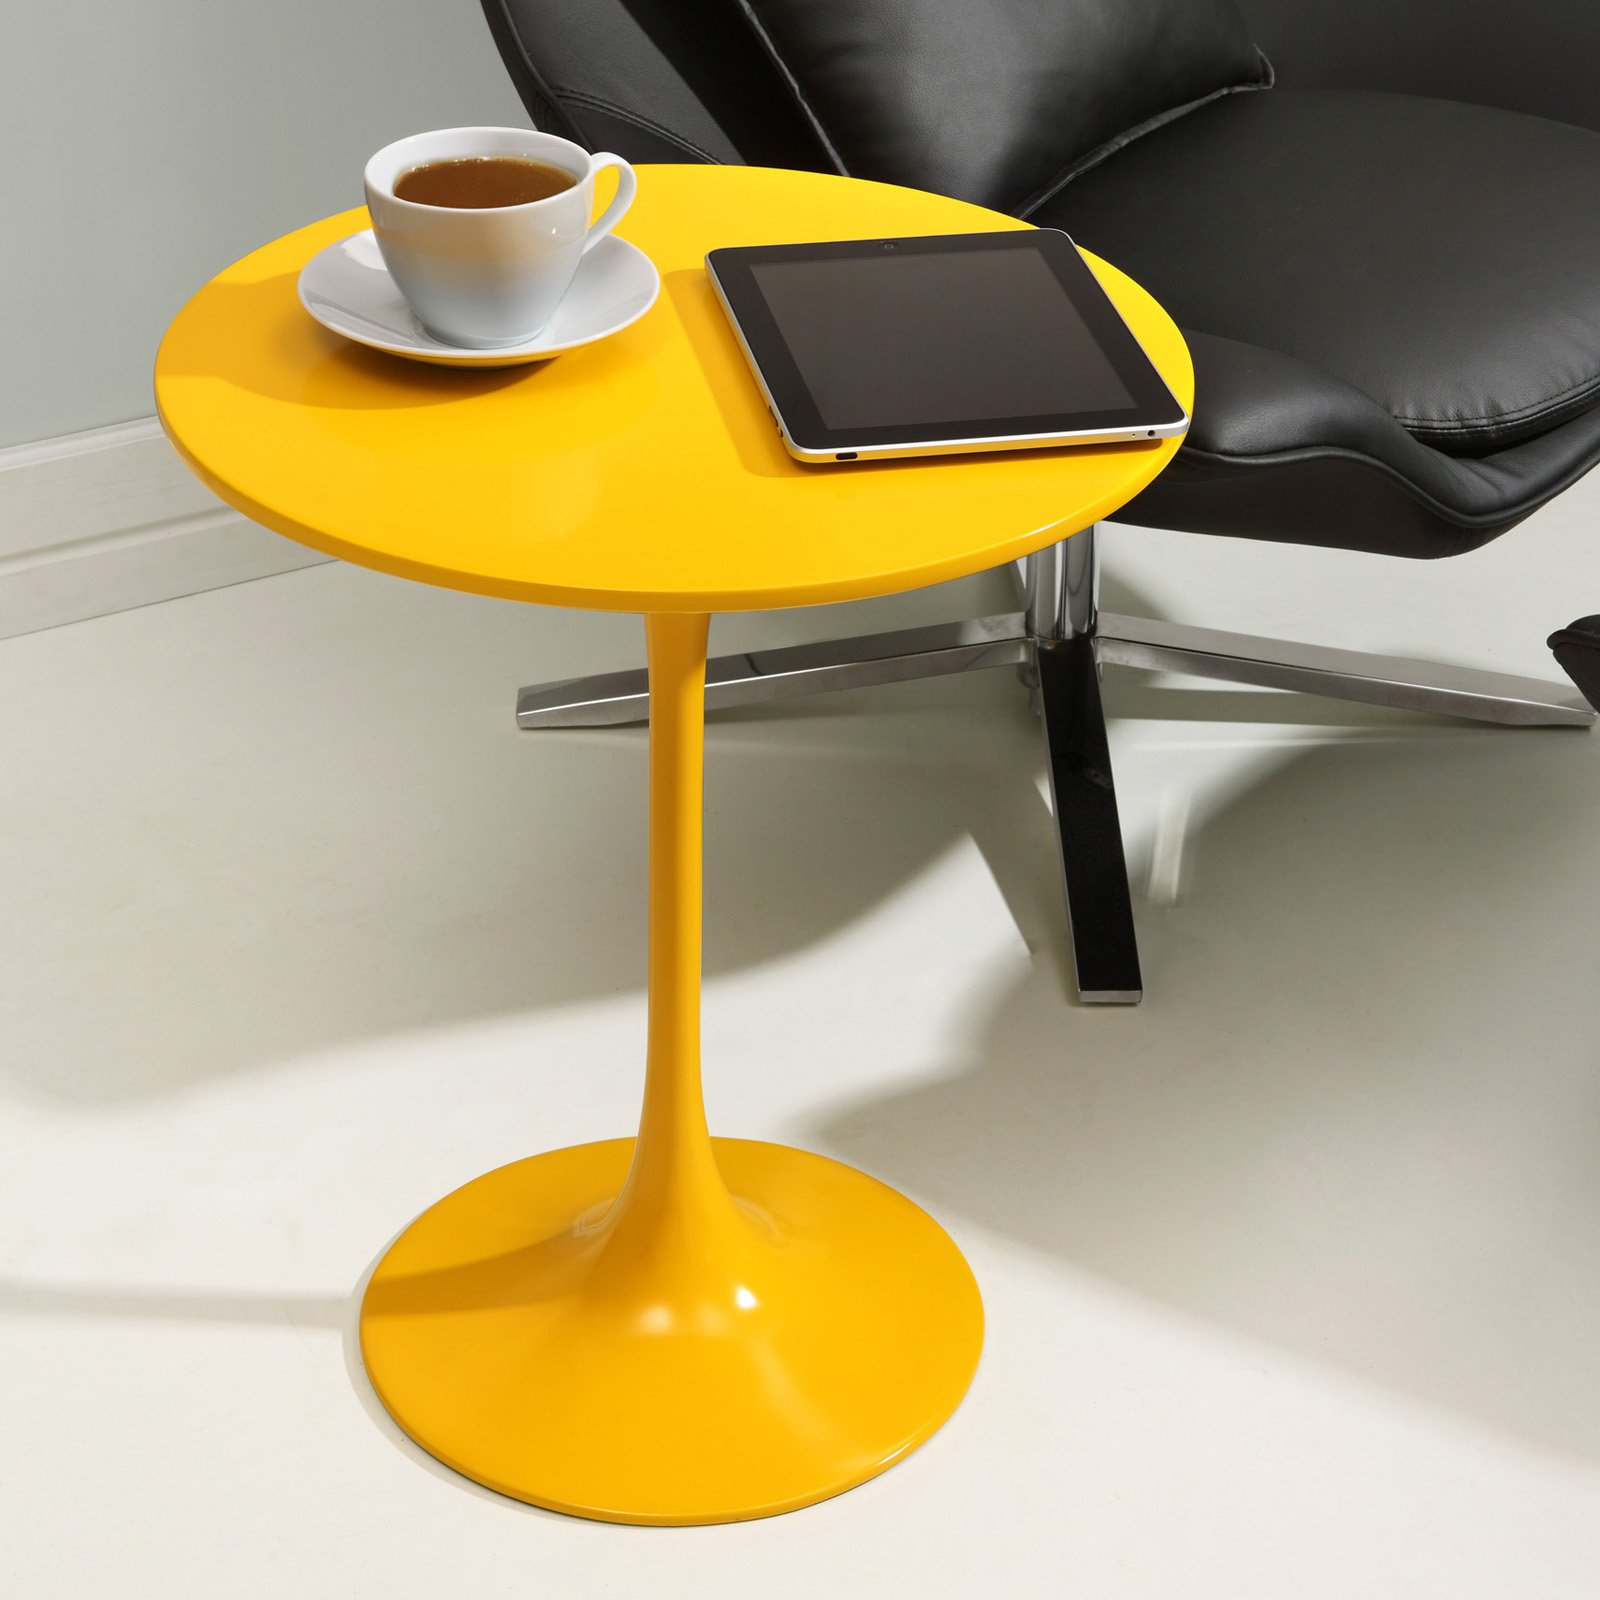 amazing yellow accent table argos placem plastic metal cover mustard target mats runner and teal lde stripe lenovo laxative colored tablecloth legal placemats multi tables